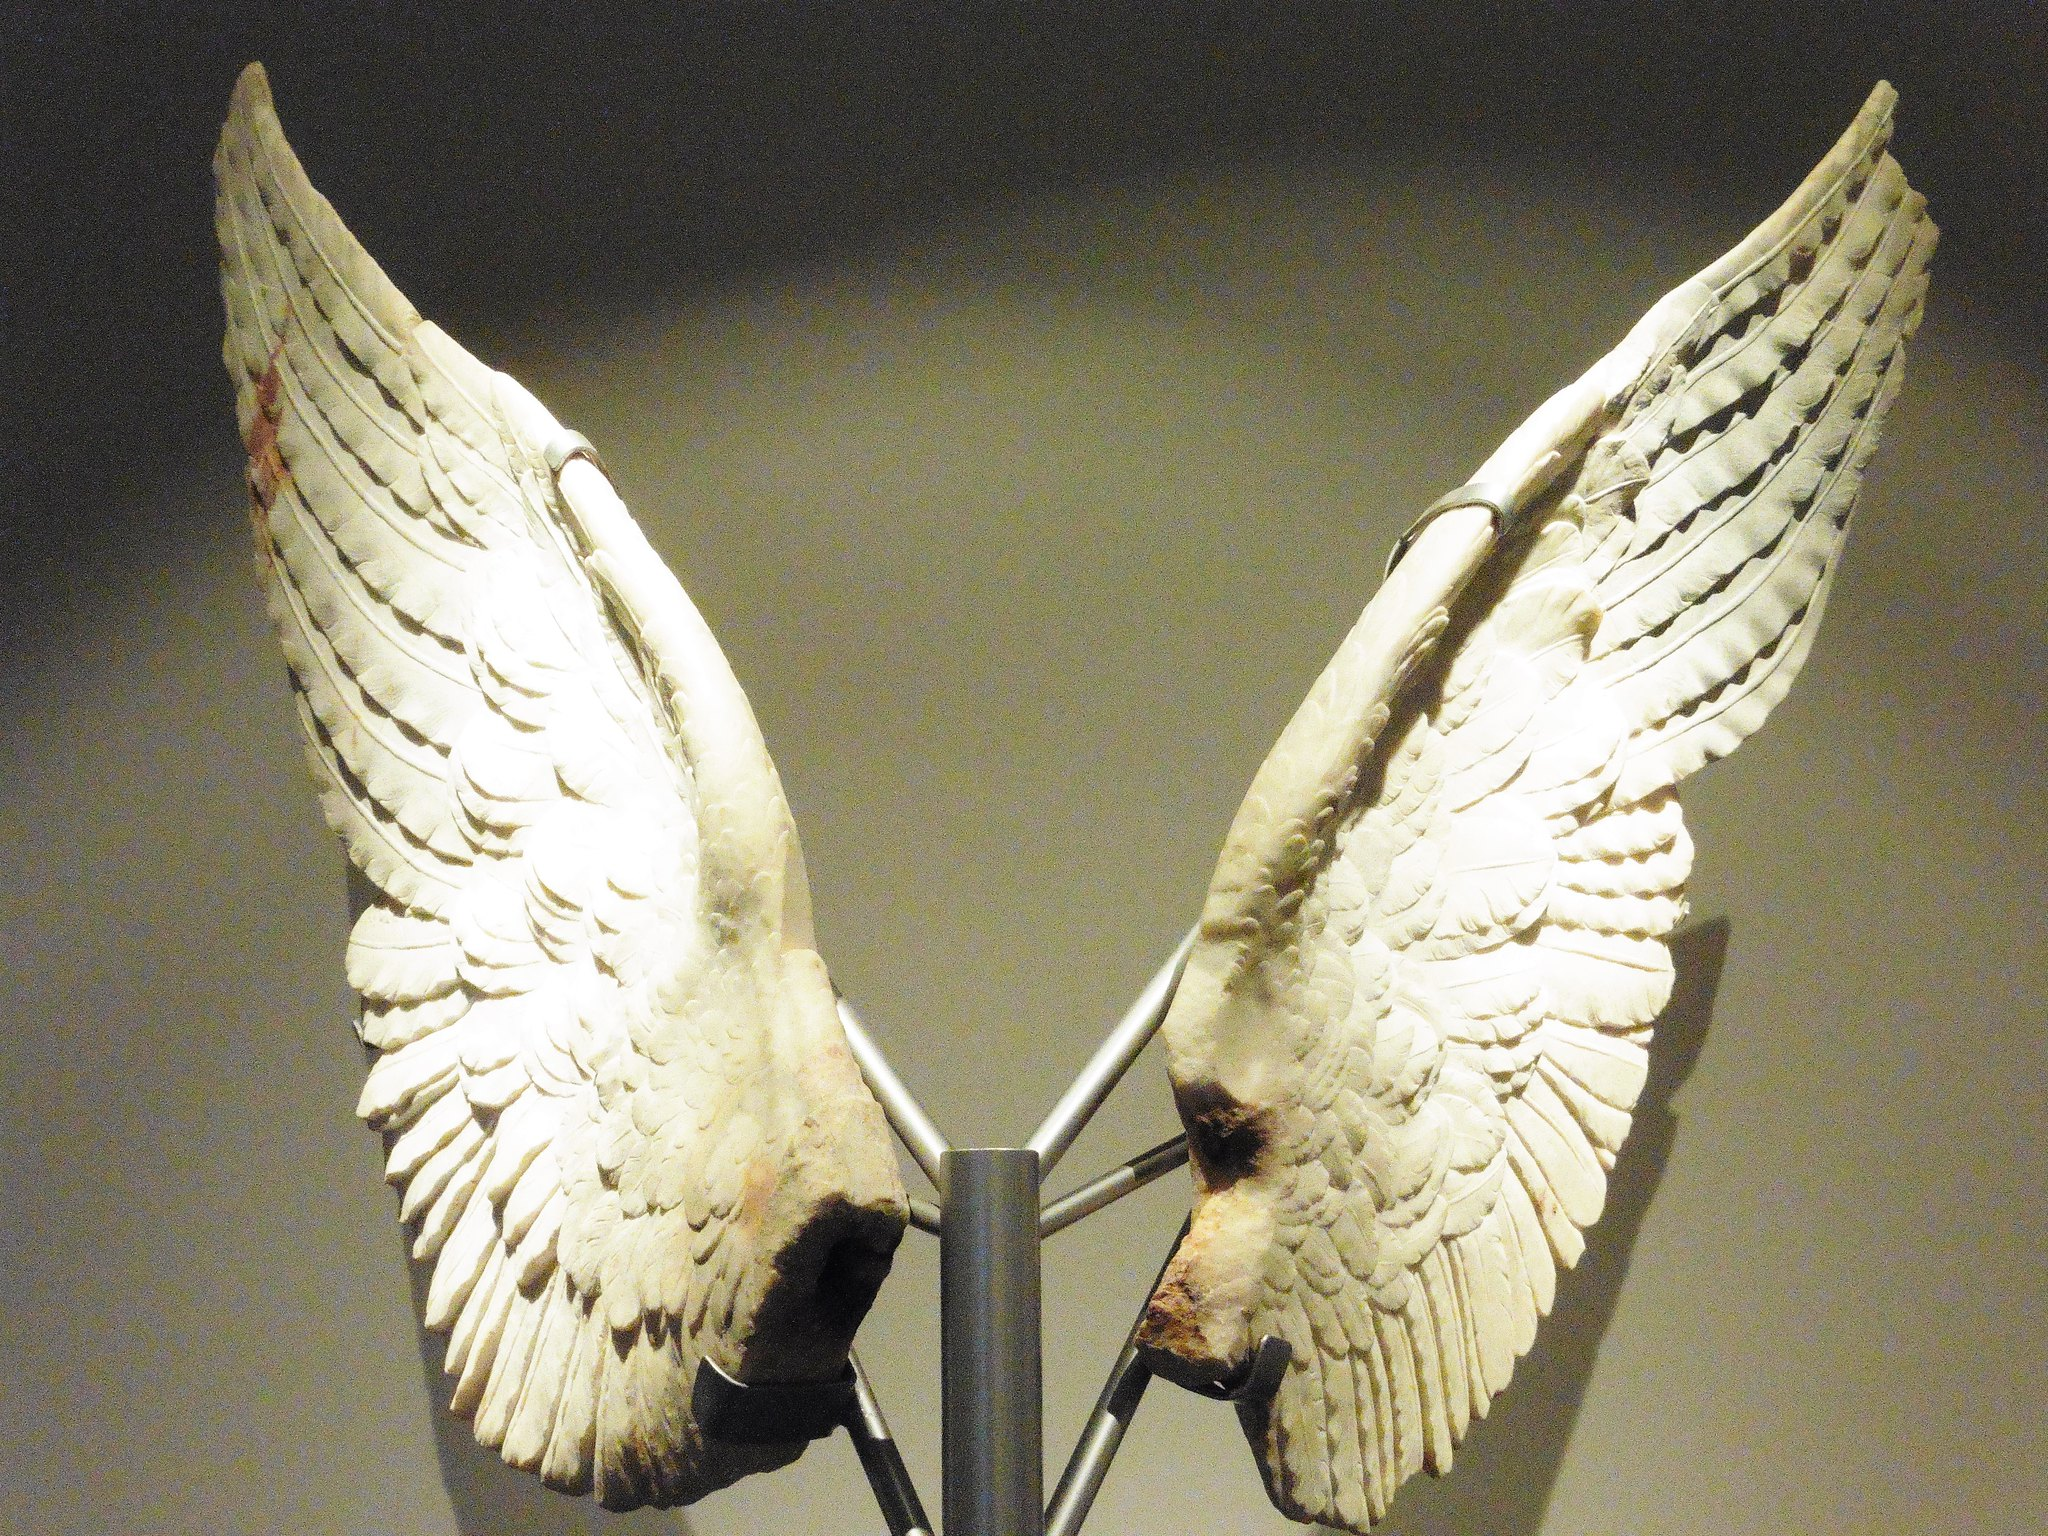 Angel Wings Sculpture in The Palatine Museum